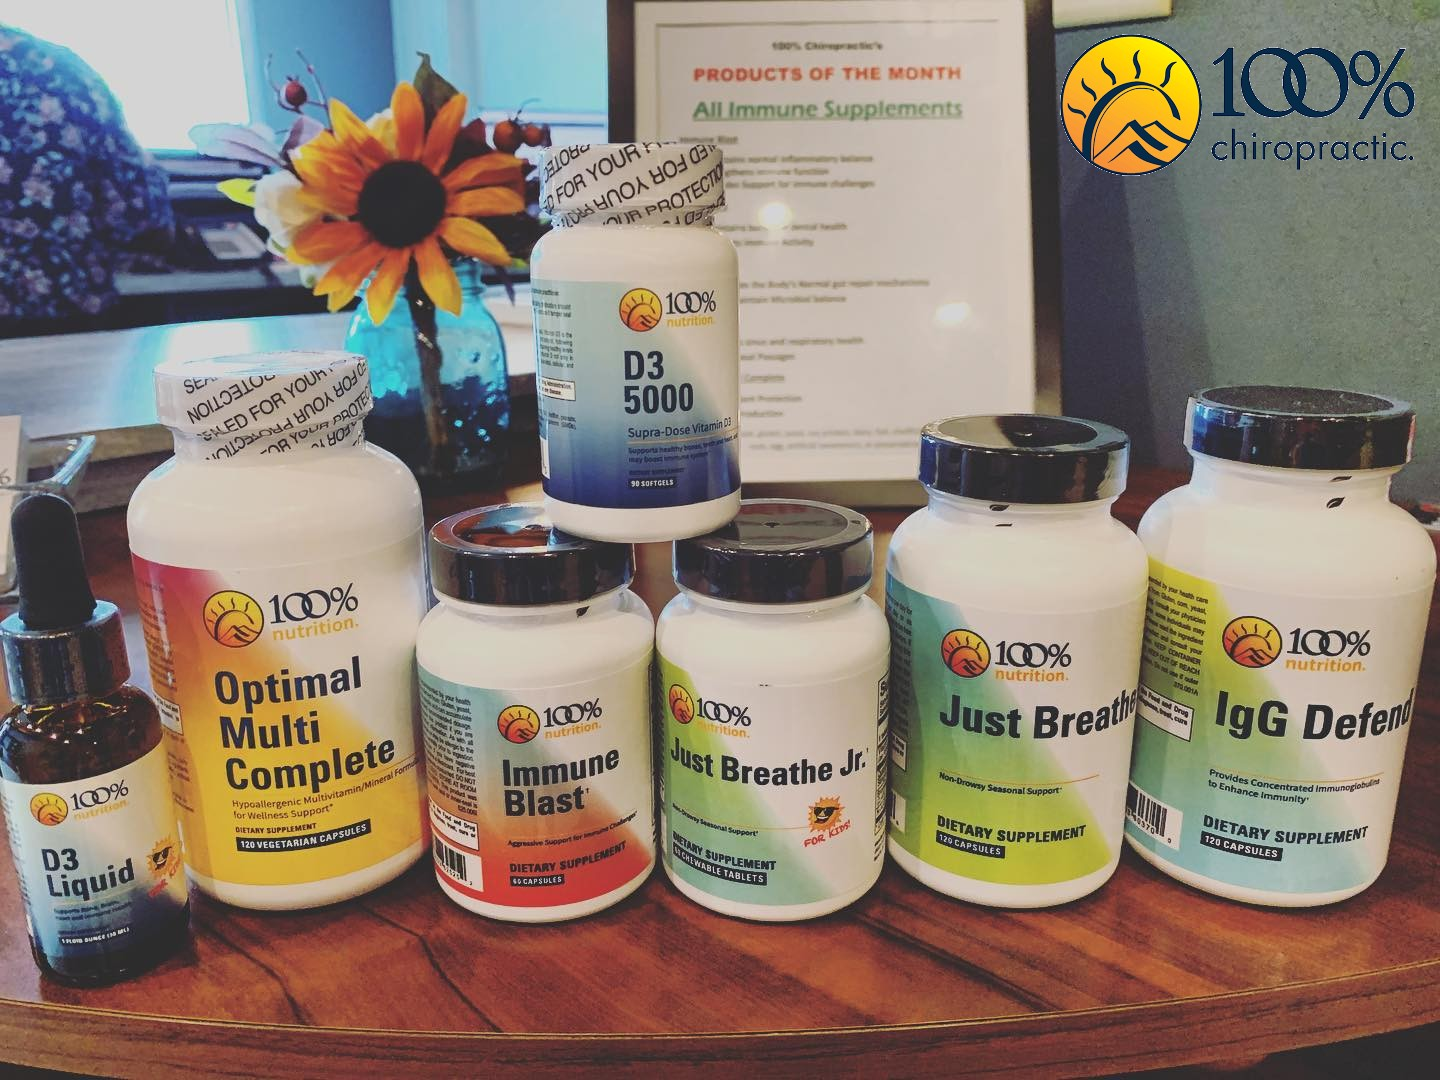 We carry a wide variety of supplements for your health and wellness. It's important to us that we educate our patients and that they can continue to care for themselves between adjustment appointments. Call or stop by today to see our supplement selection!, , Chiropractor